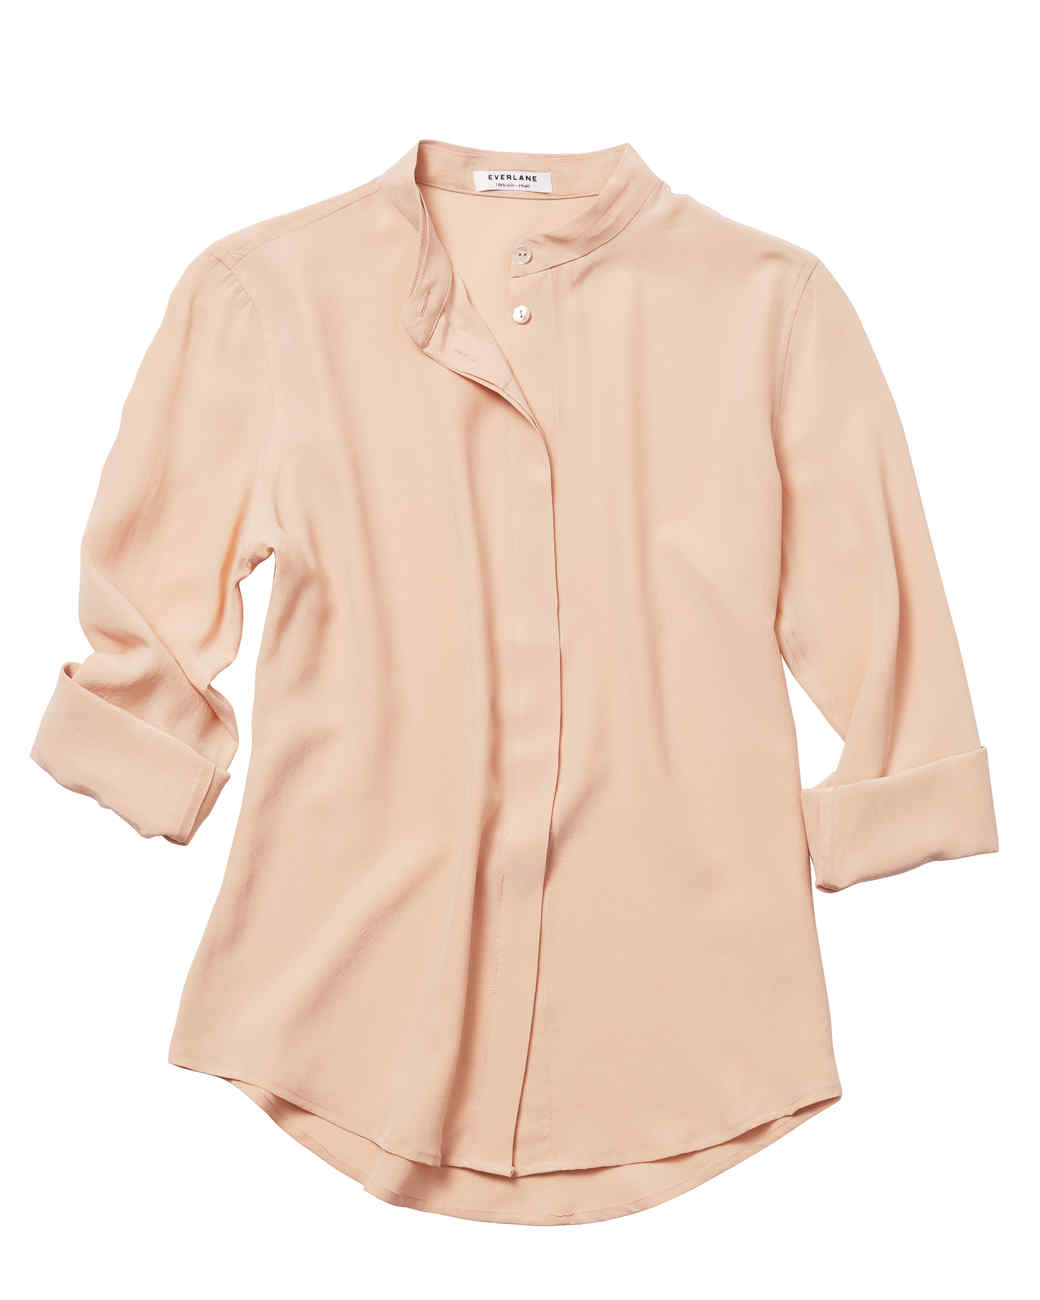 everlane-silk-shirt-113-d111168.jpg